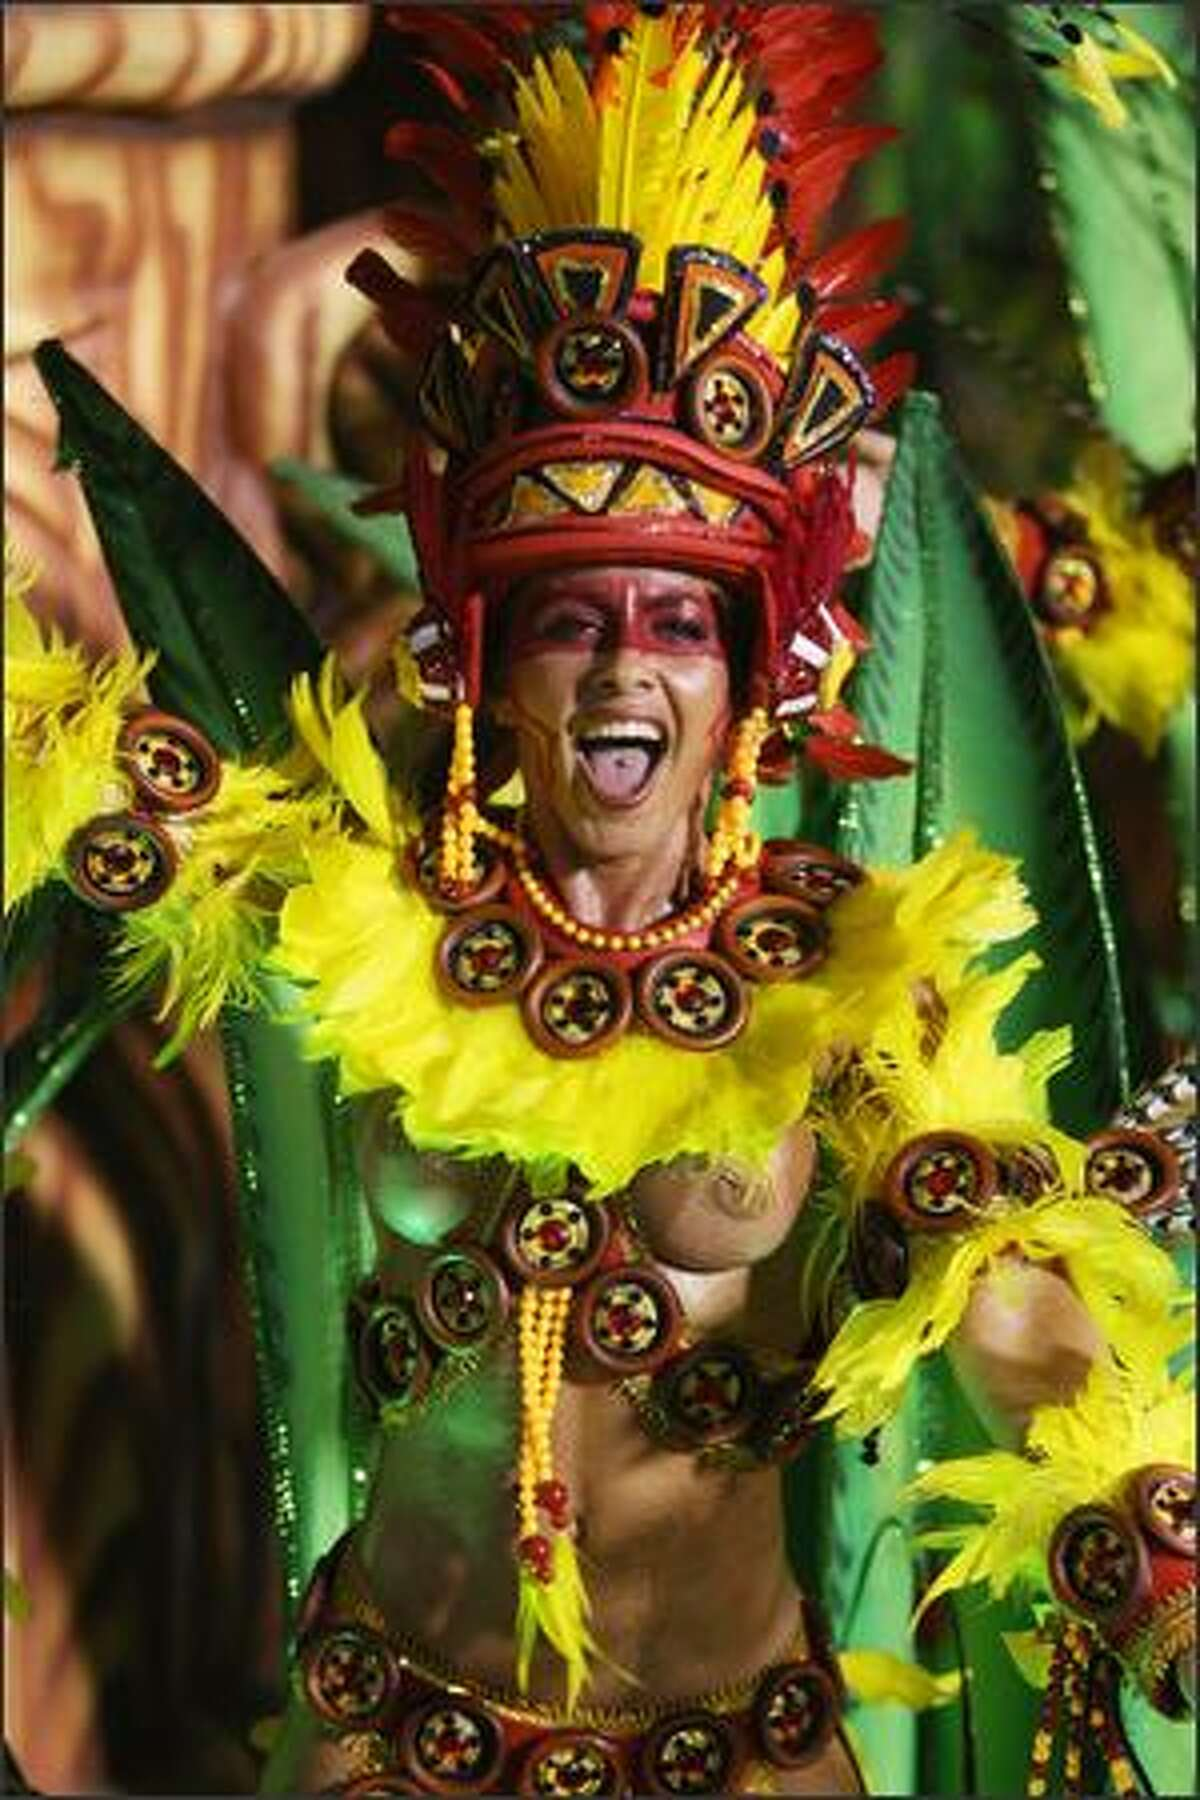 An Academicos do Grande Rio samba school dancer performs down the Sambodrome on the first night of the Carnival samba school parade in Rio de Janeiro, Brazil on Monday. Carnival is the biggest and most popular celebration in Brazil and runs throughout the country until February 24.